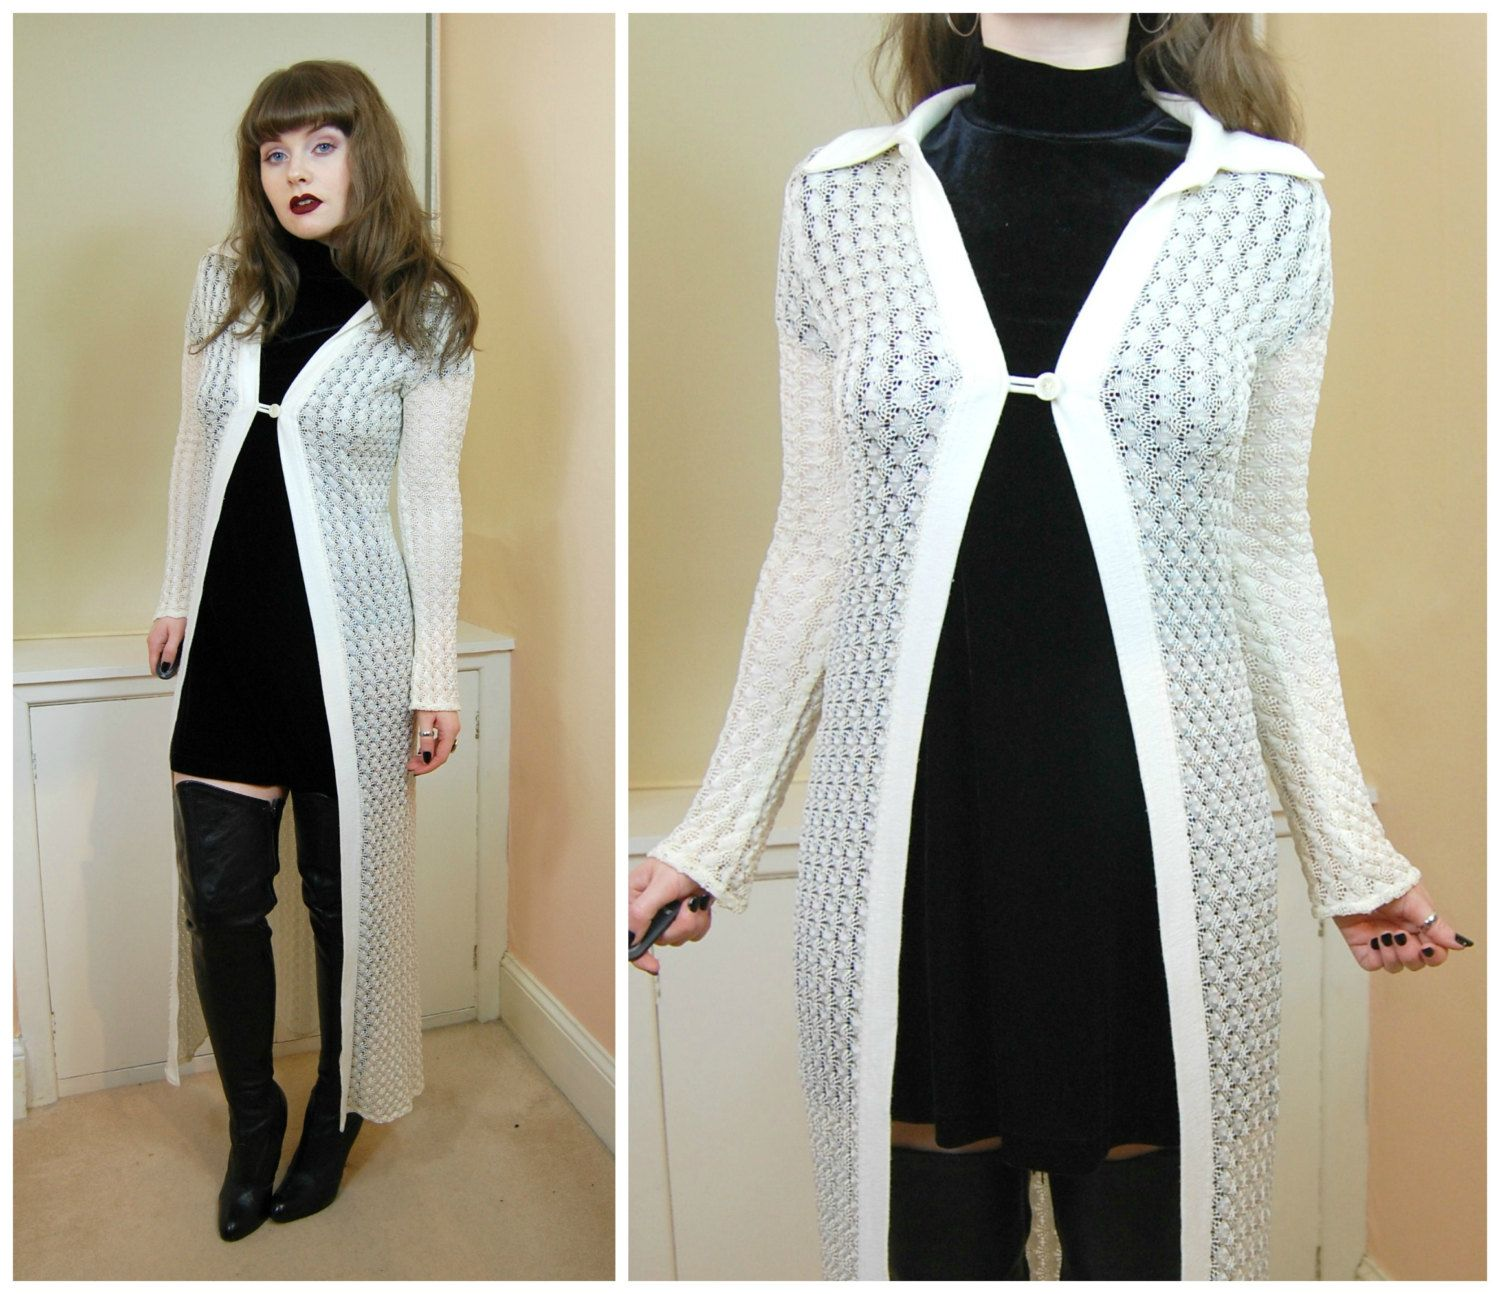 90s Grunge Goth Minimalist White Crochet Viscose Knit Single ...